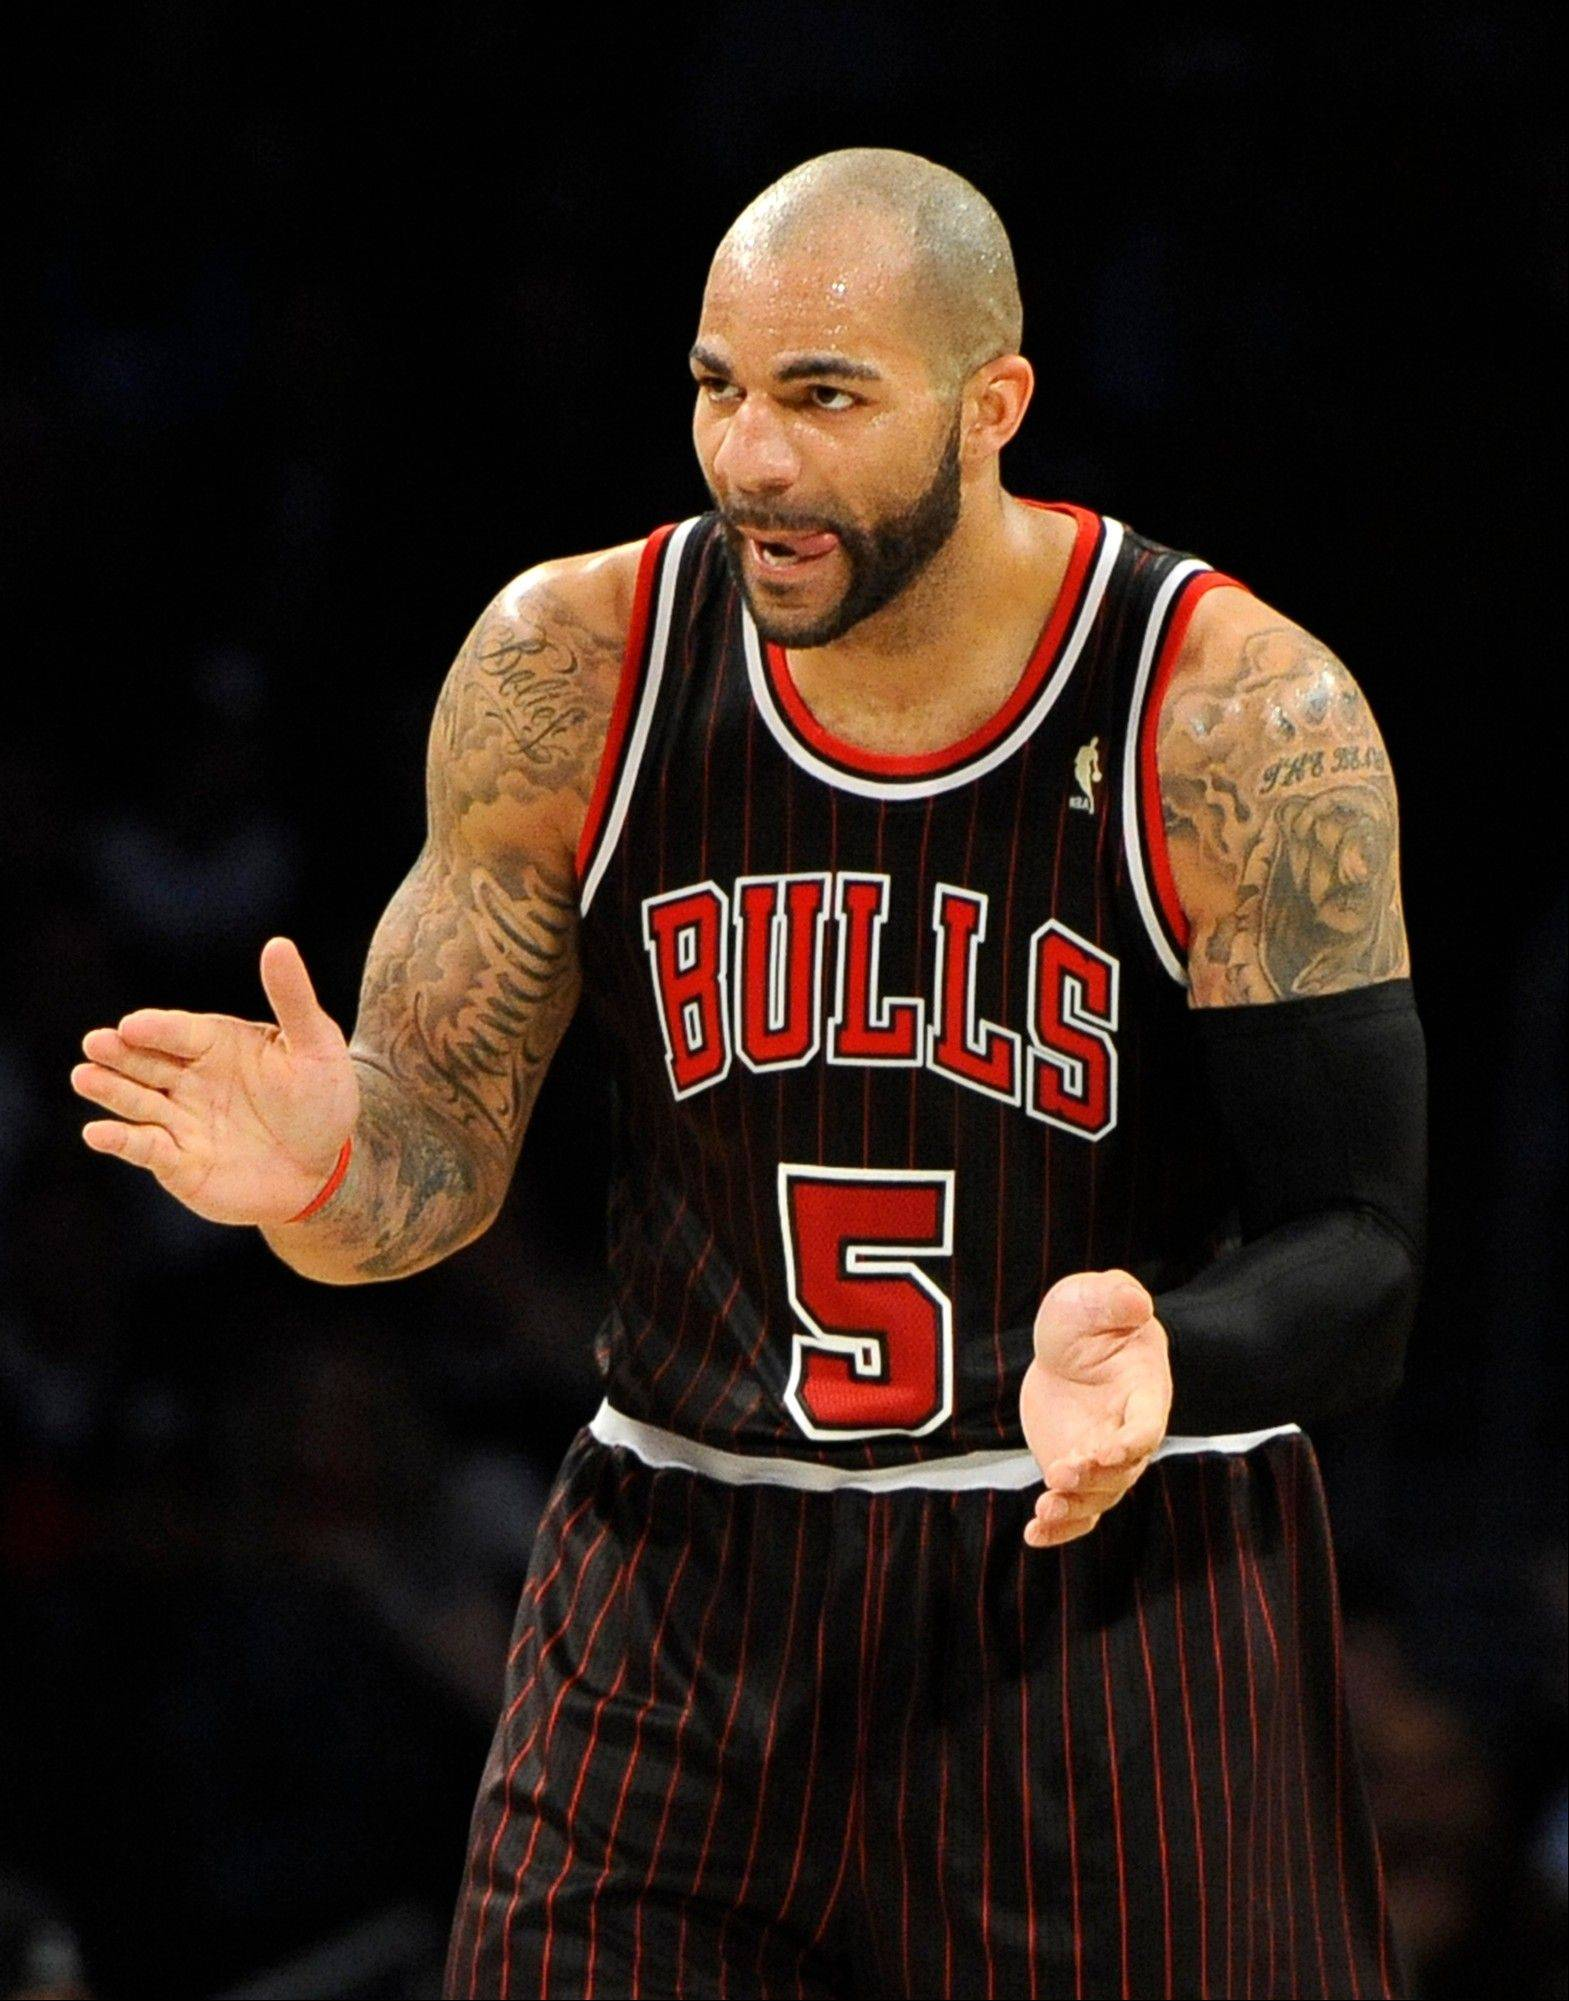 Carlos Boozer scored 29 points and pulled down 18 rebounds in the Bulls' comeback win against the Nets on Thursday night.